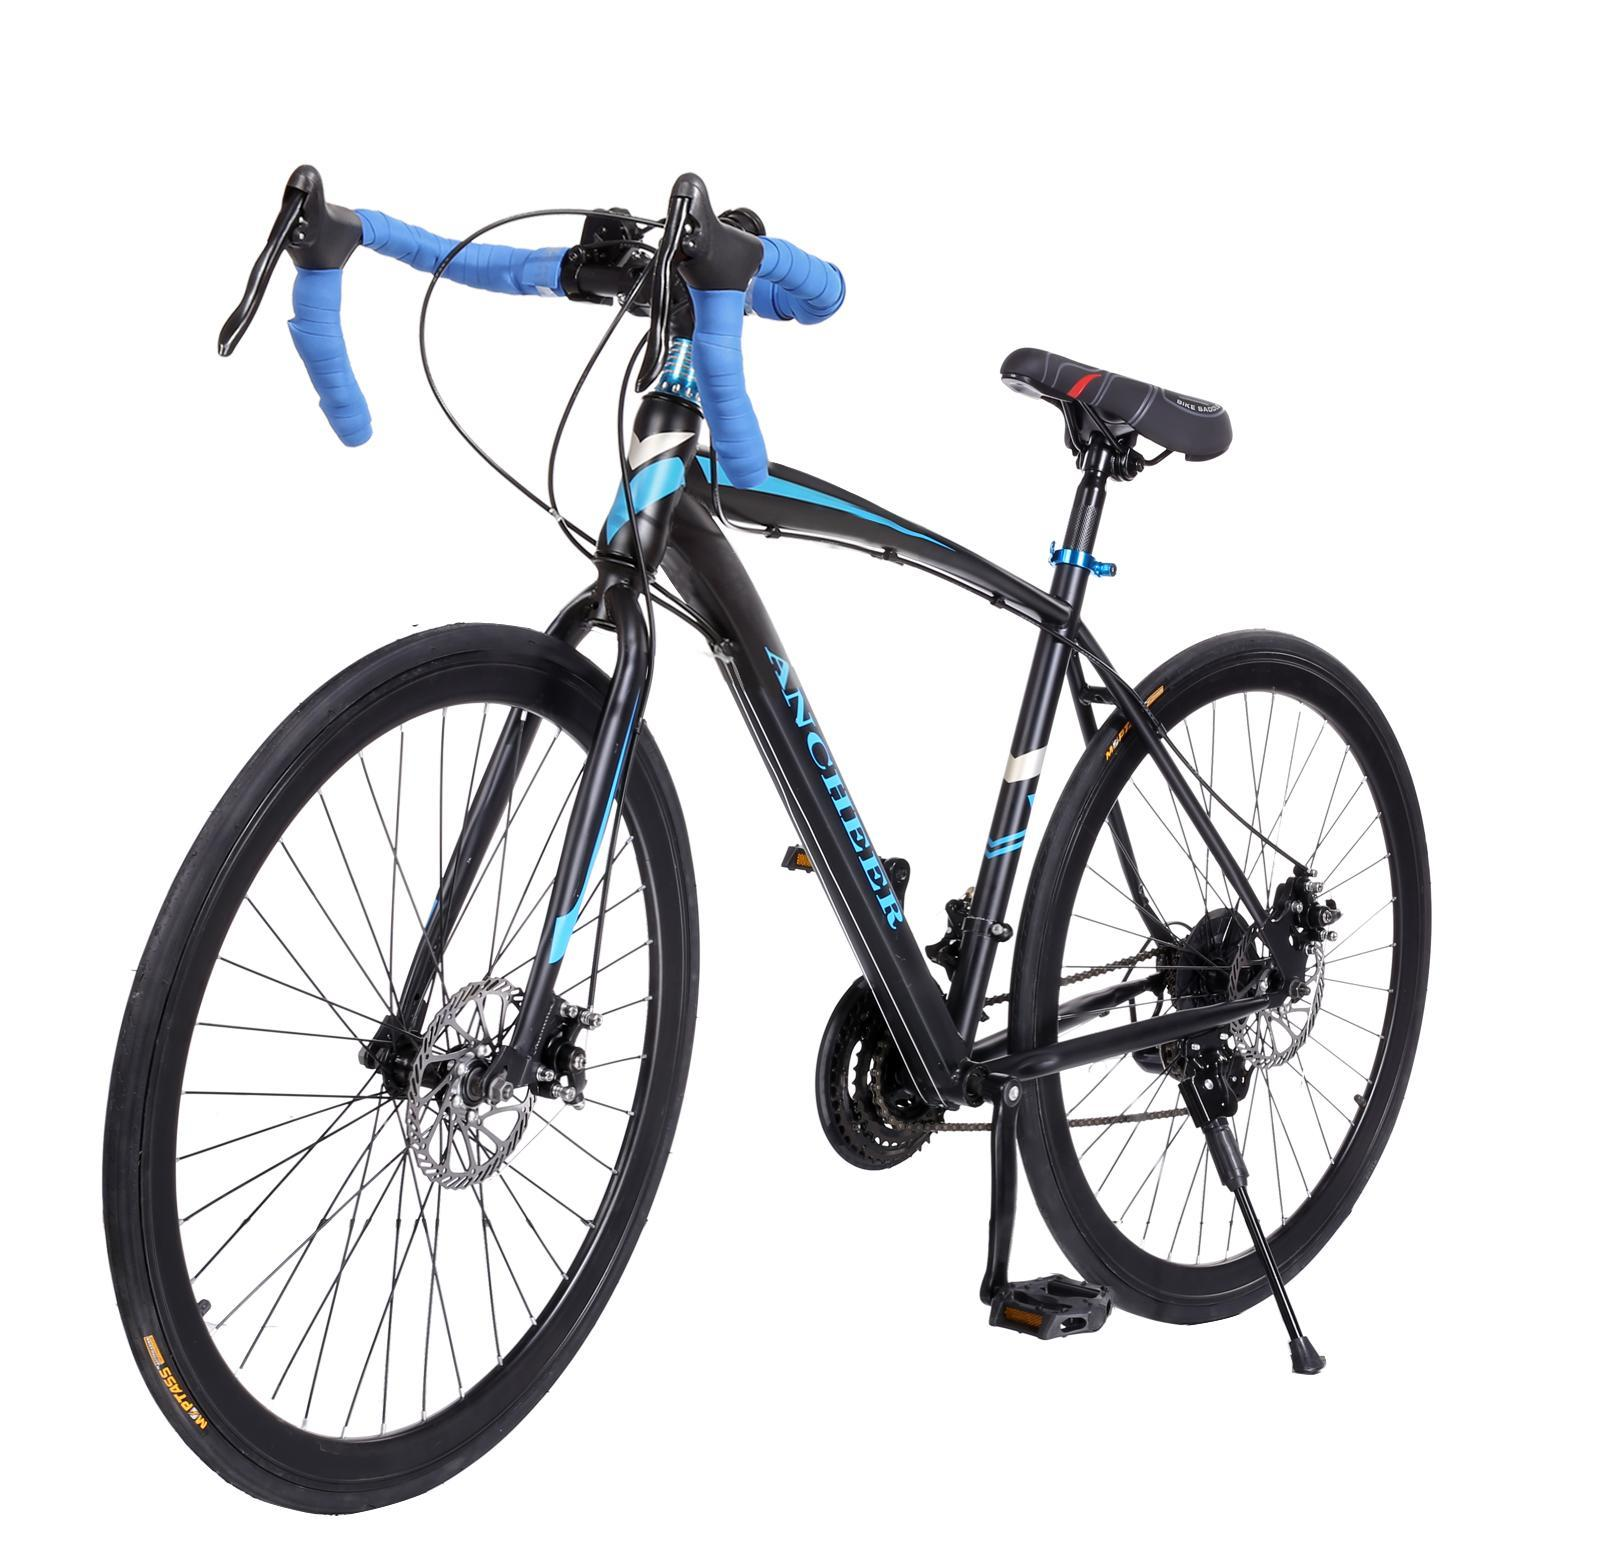 21-speed Road Bike 700C Aluminum Road Bicycle Cycling HPPY